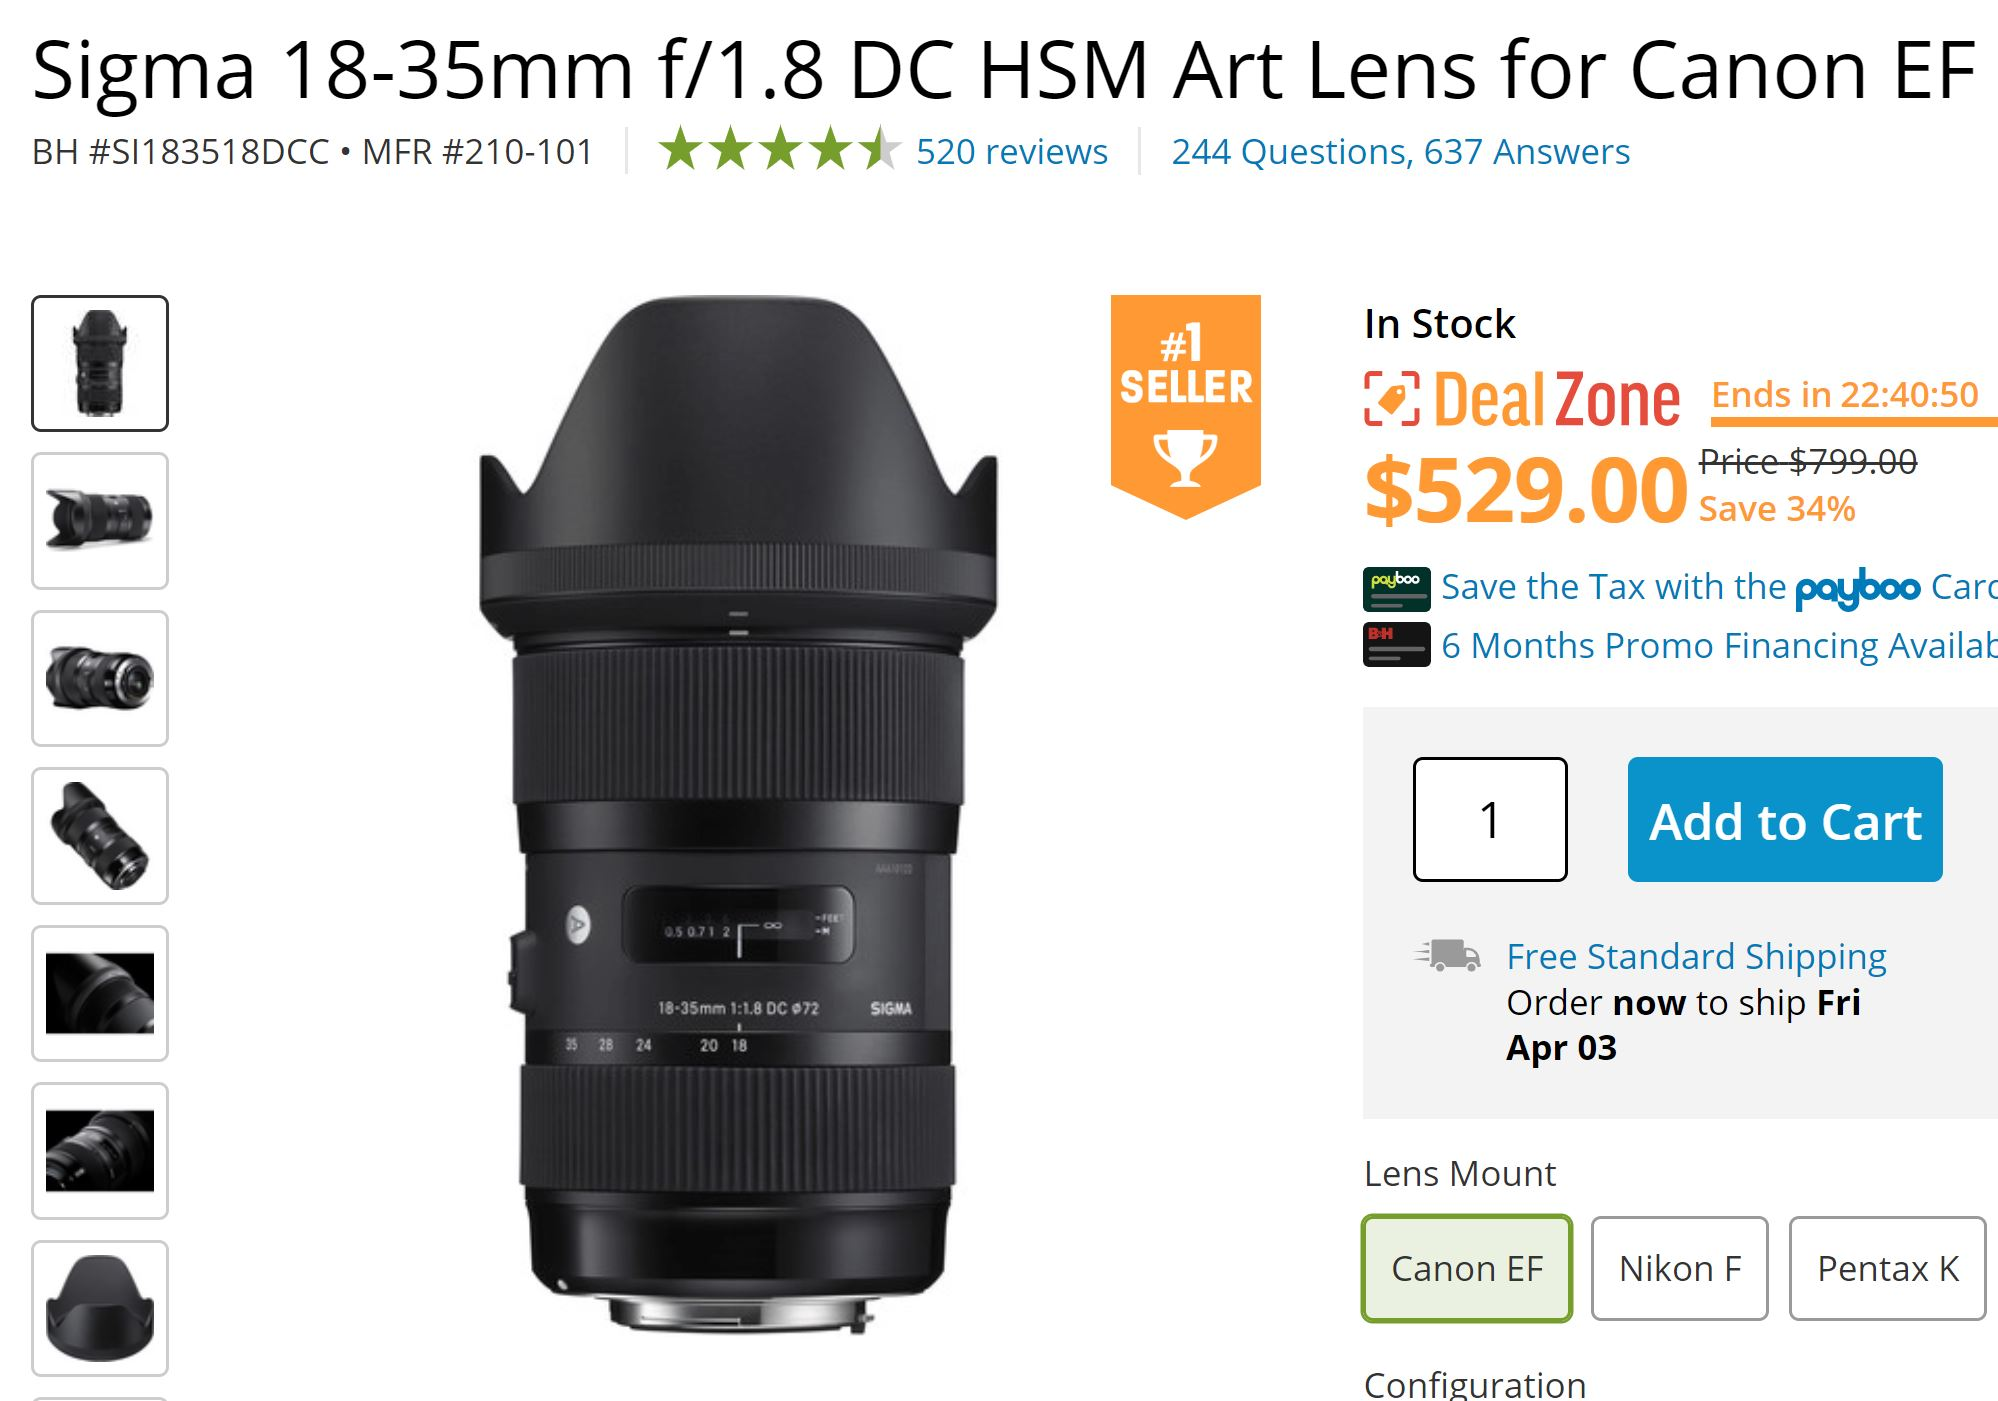 Today Only – Sigma 18-35mm f/1.8 DC HSM Art Lens for $529 at B&H !